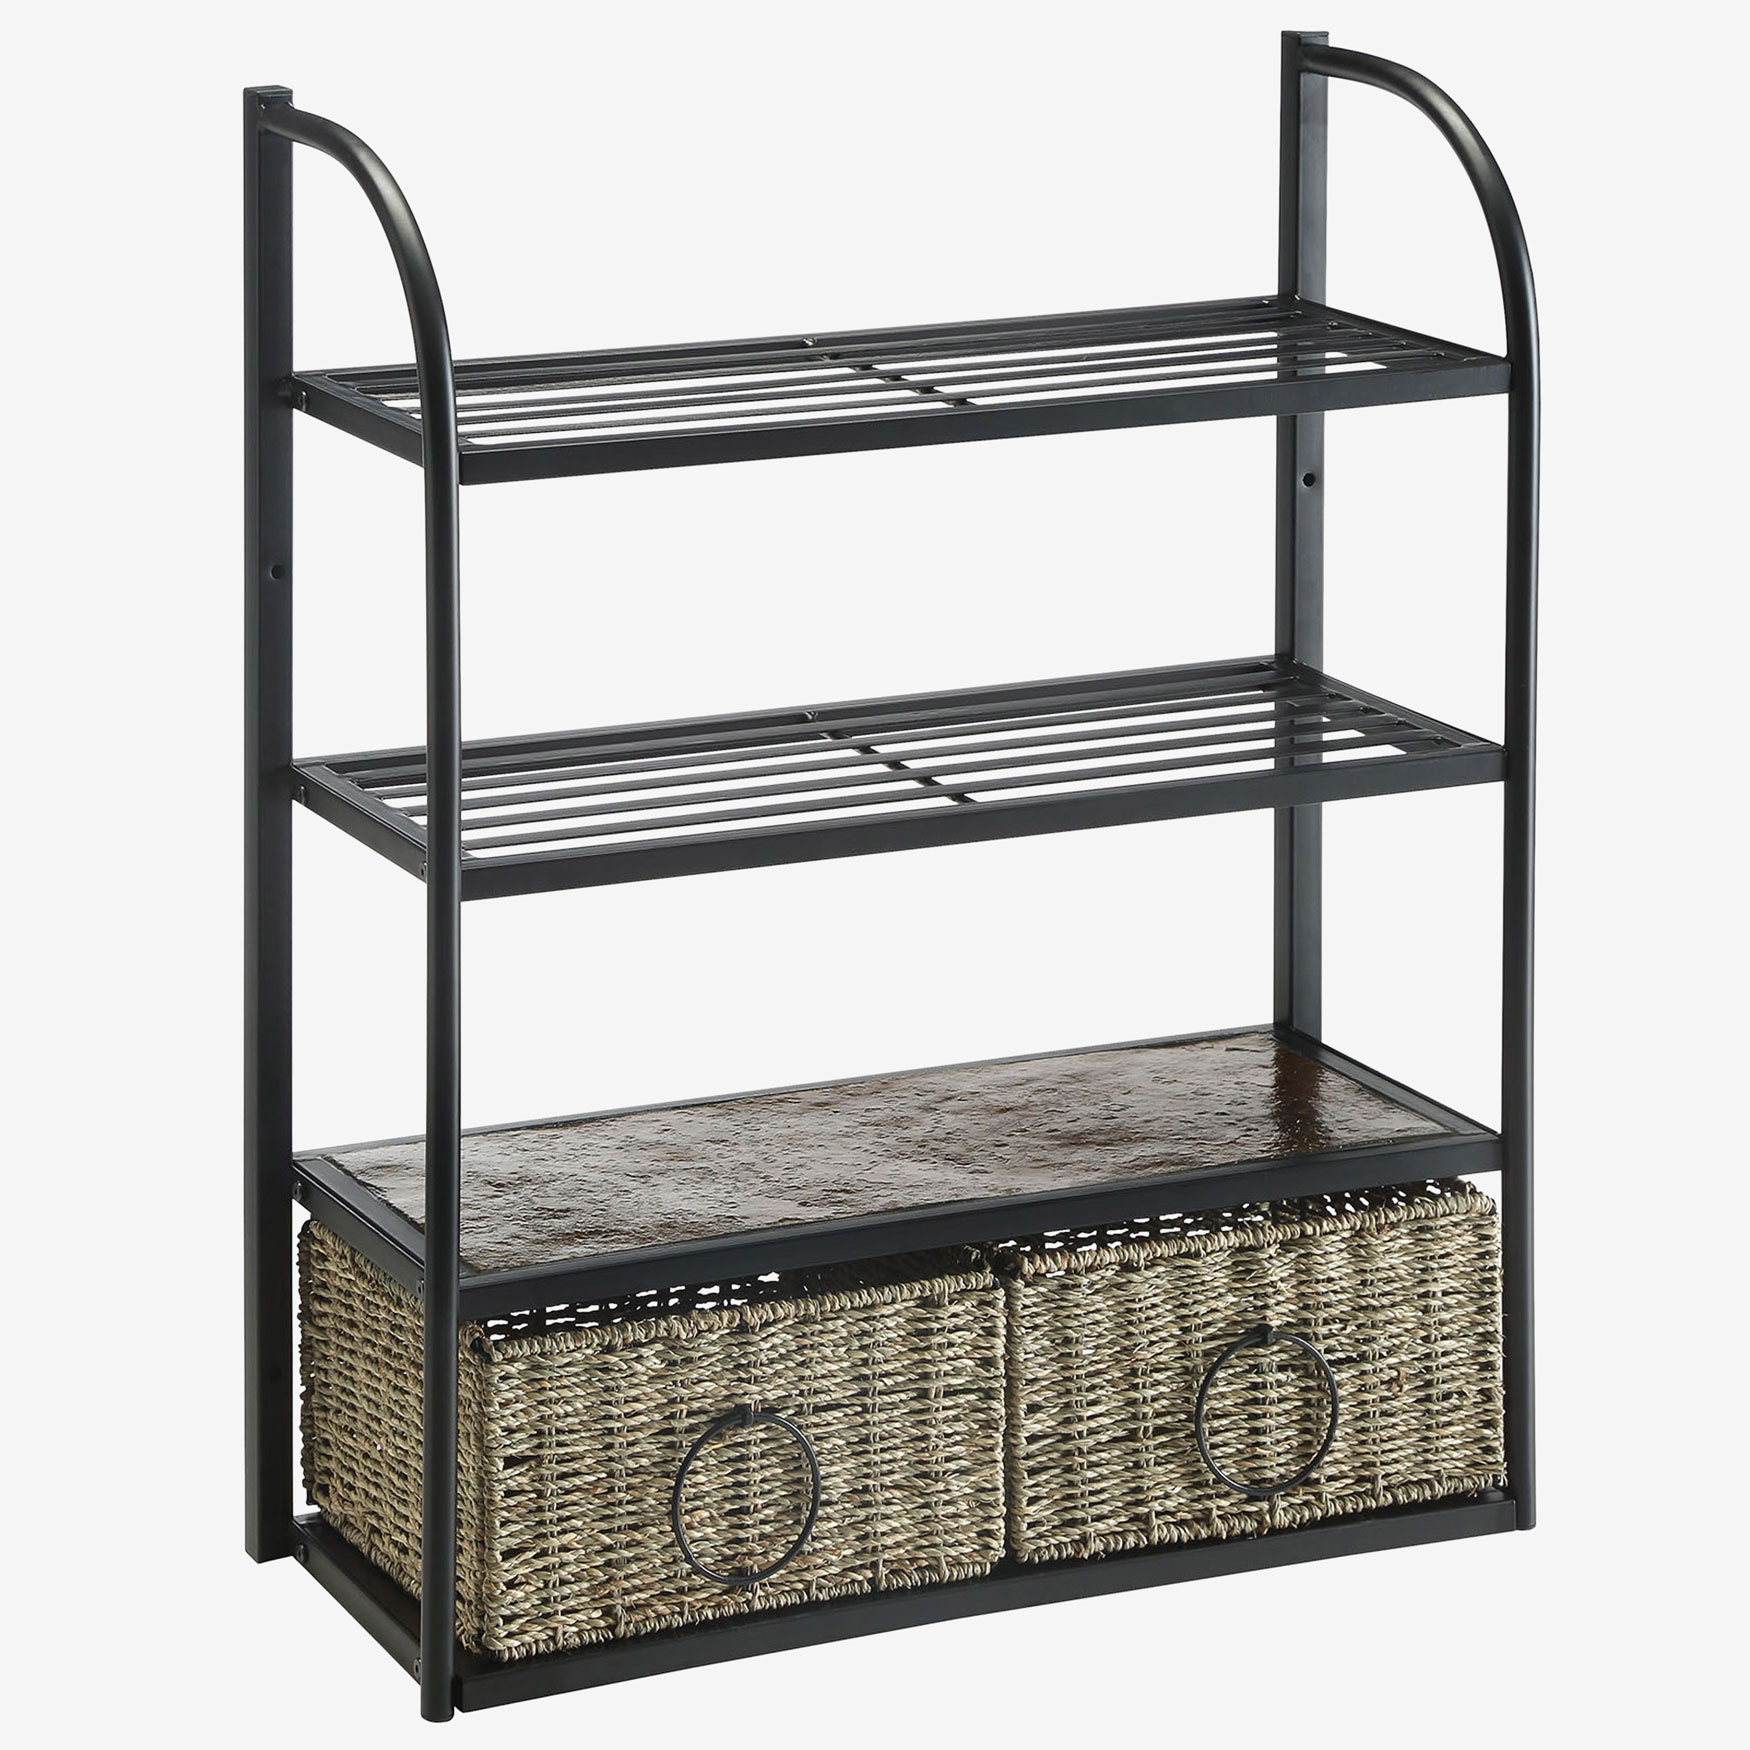 Windsor Storage Unit with 2 Baskets, BLACK METAL